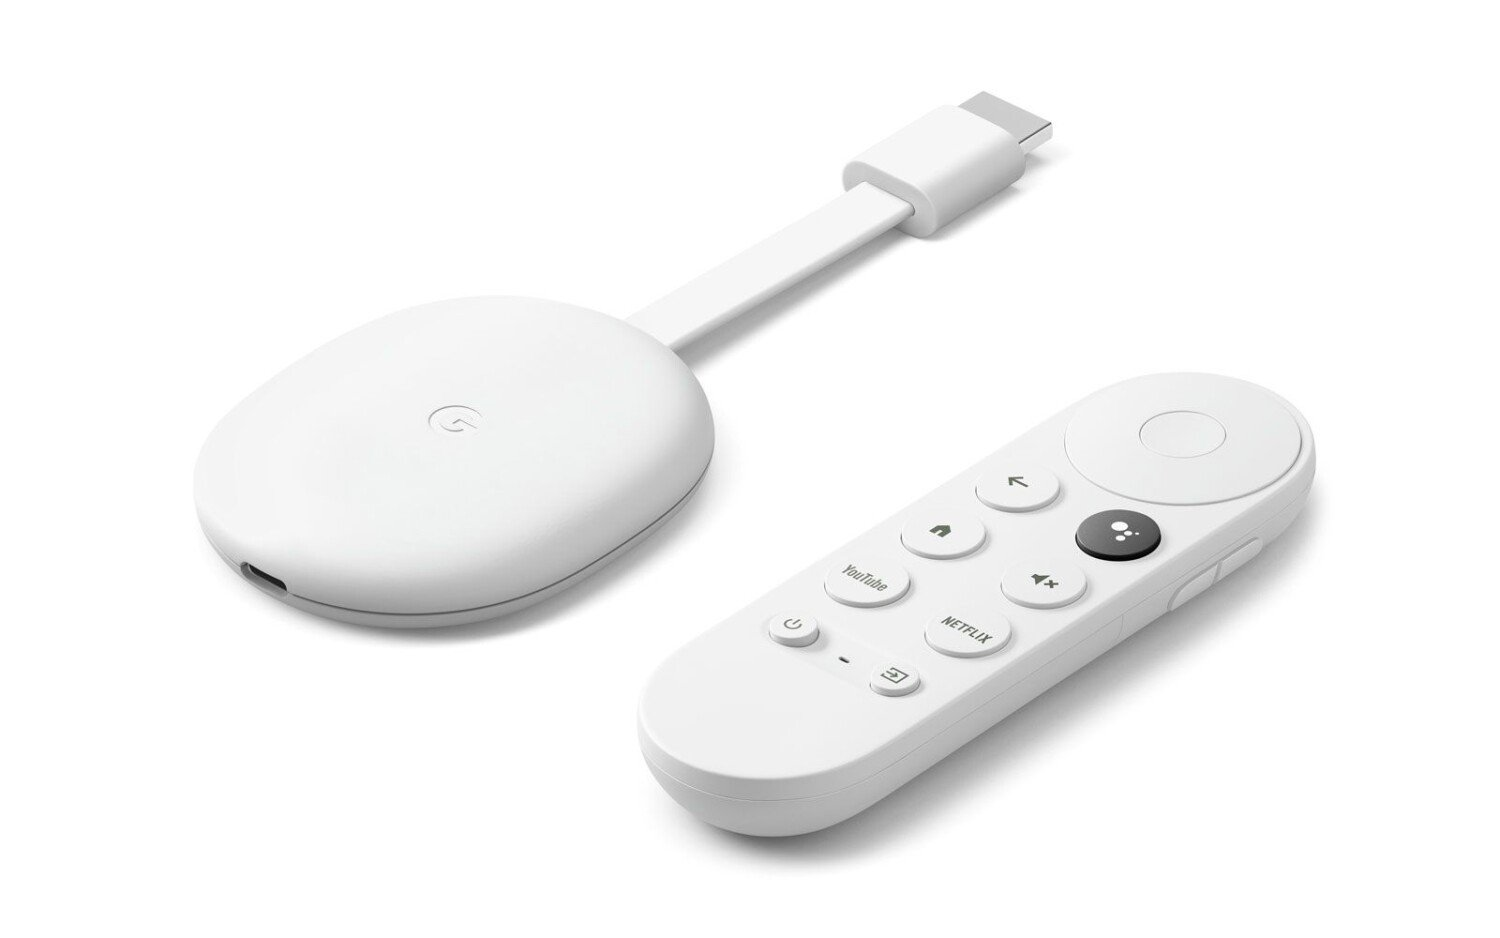 Google Chromecast with Google TV